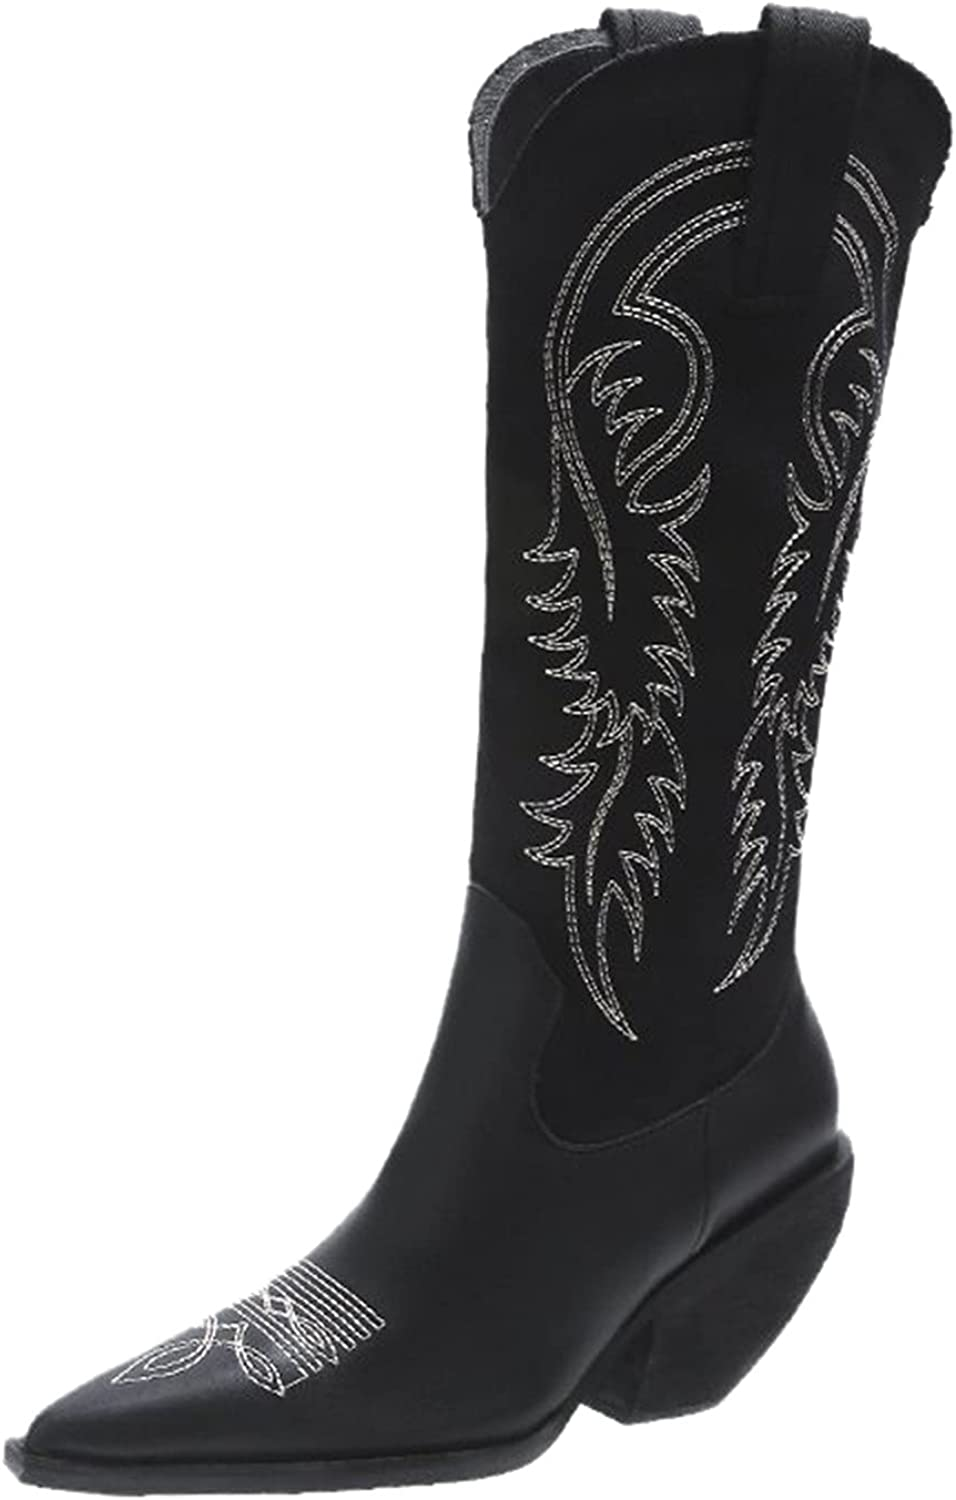 Yuekarel Sexy Thigh High Boots Fashion Mid Calf Boots Embroidere